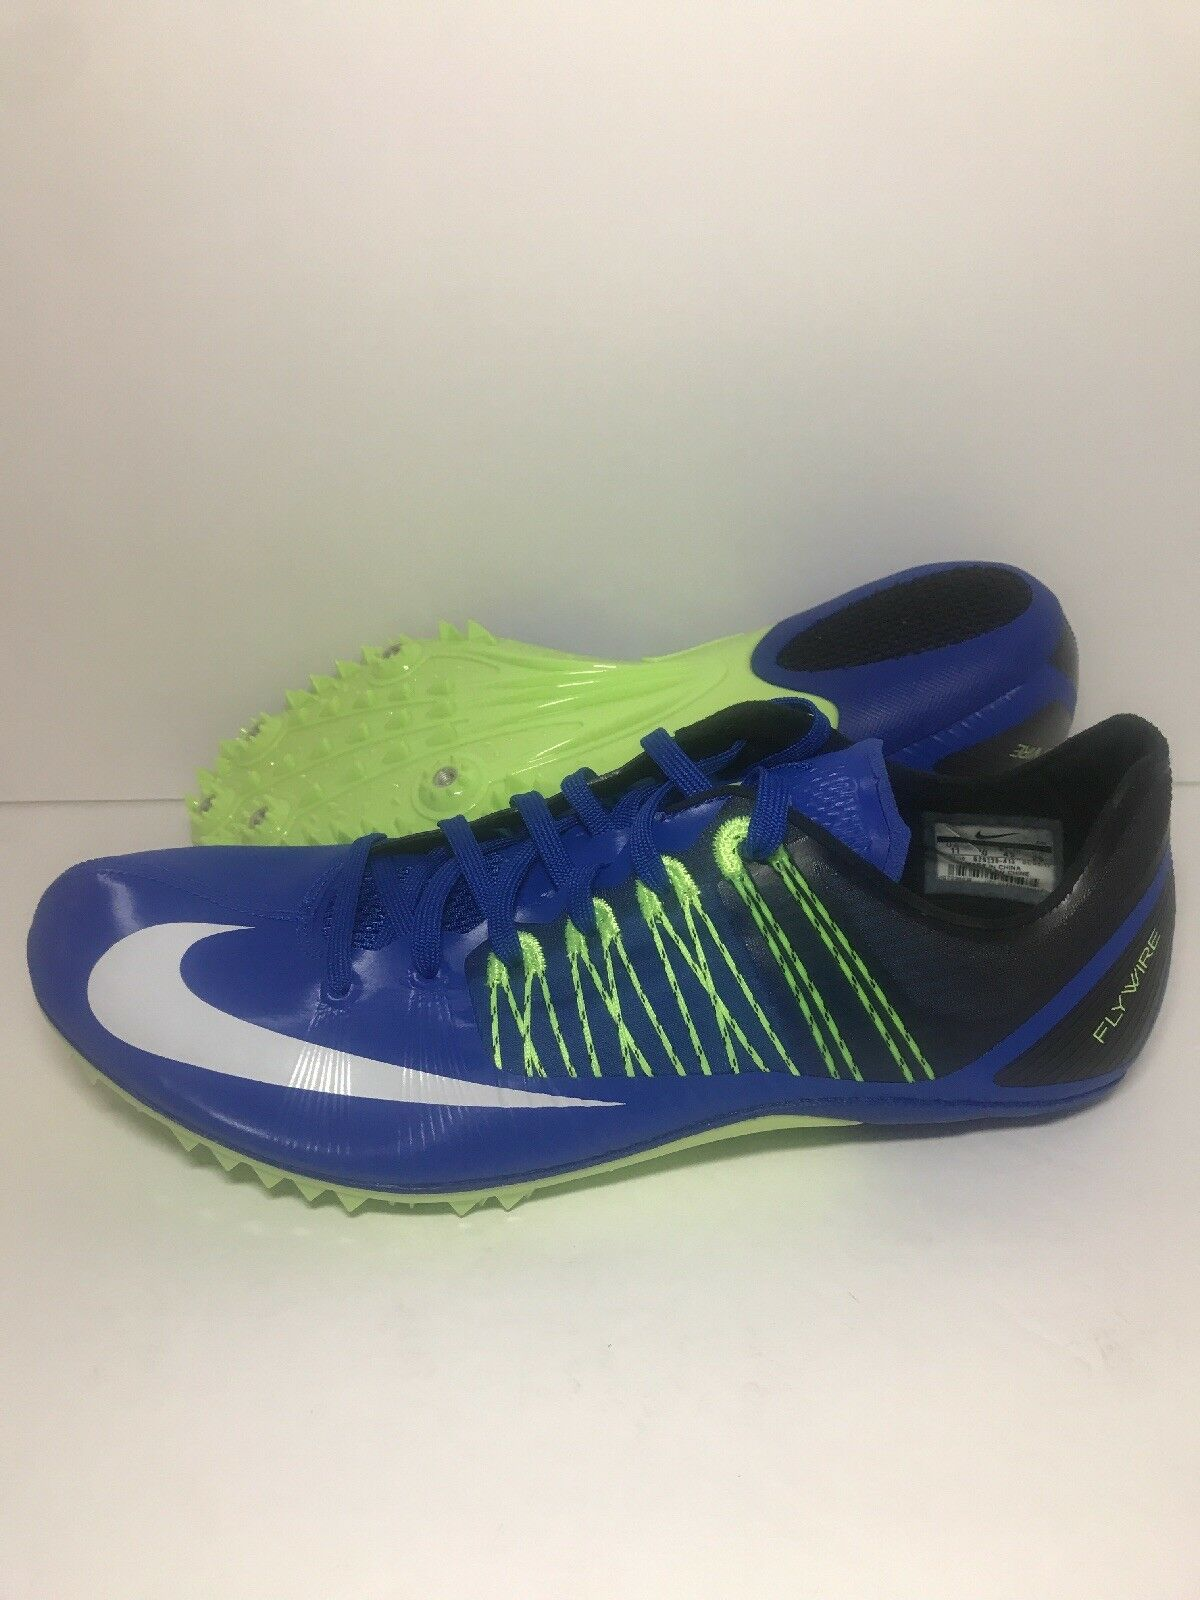 3894c04a2d0 Nike Zoom Celar 5 5 5 Track Sprint Racing Blue Green 629226-413 Mens 10.5  Men s Big Size Breath Running Hiking Shoes ...